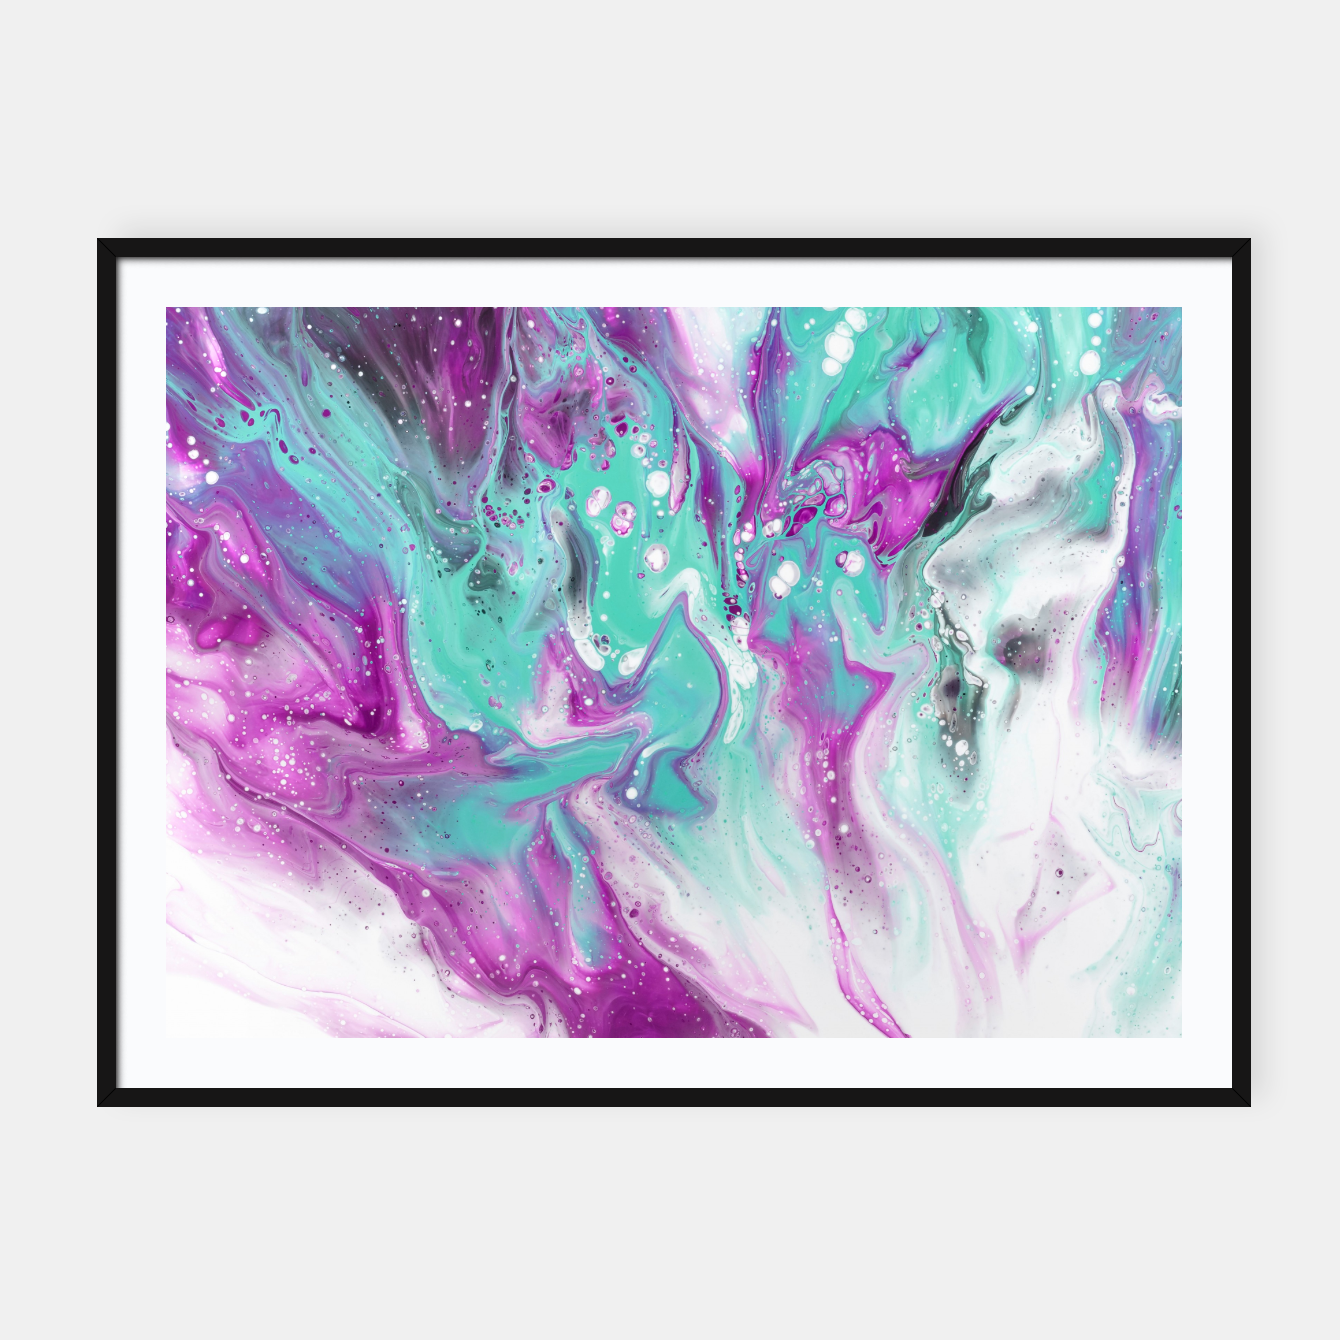 Zdjęcie Colorful watercolor space marble Framed poster - Live Heroes